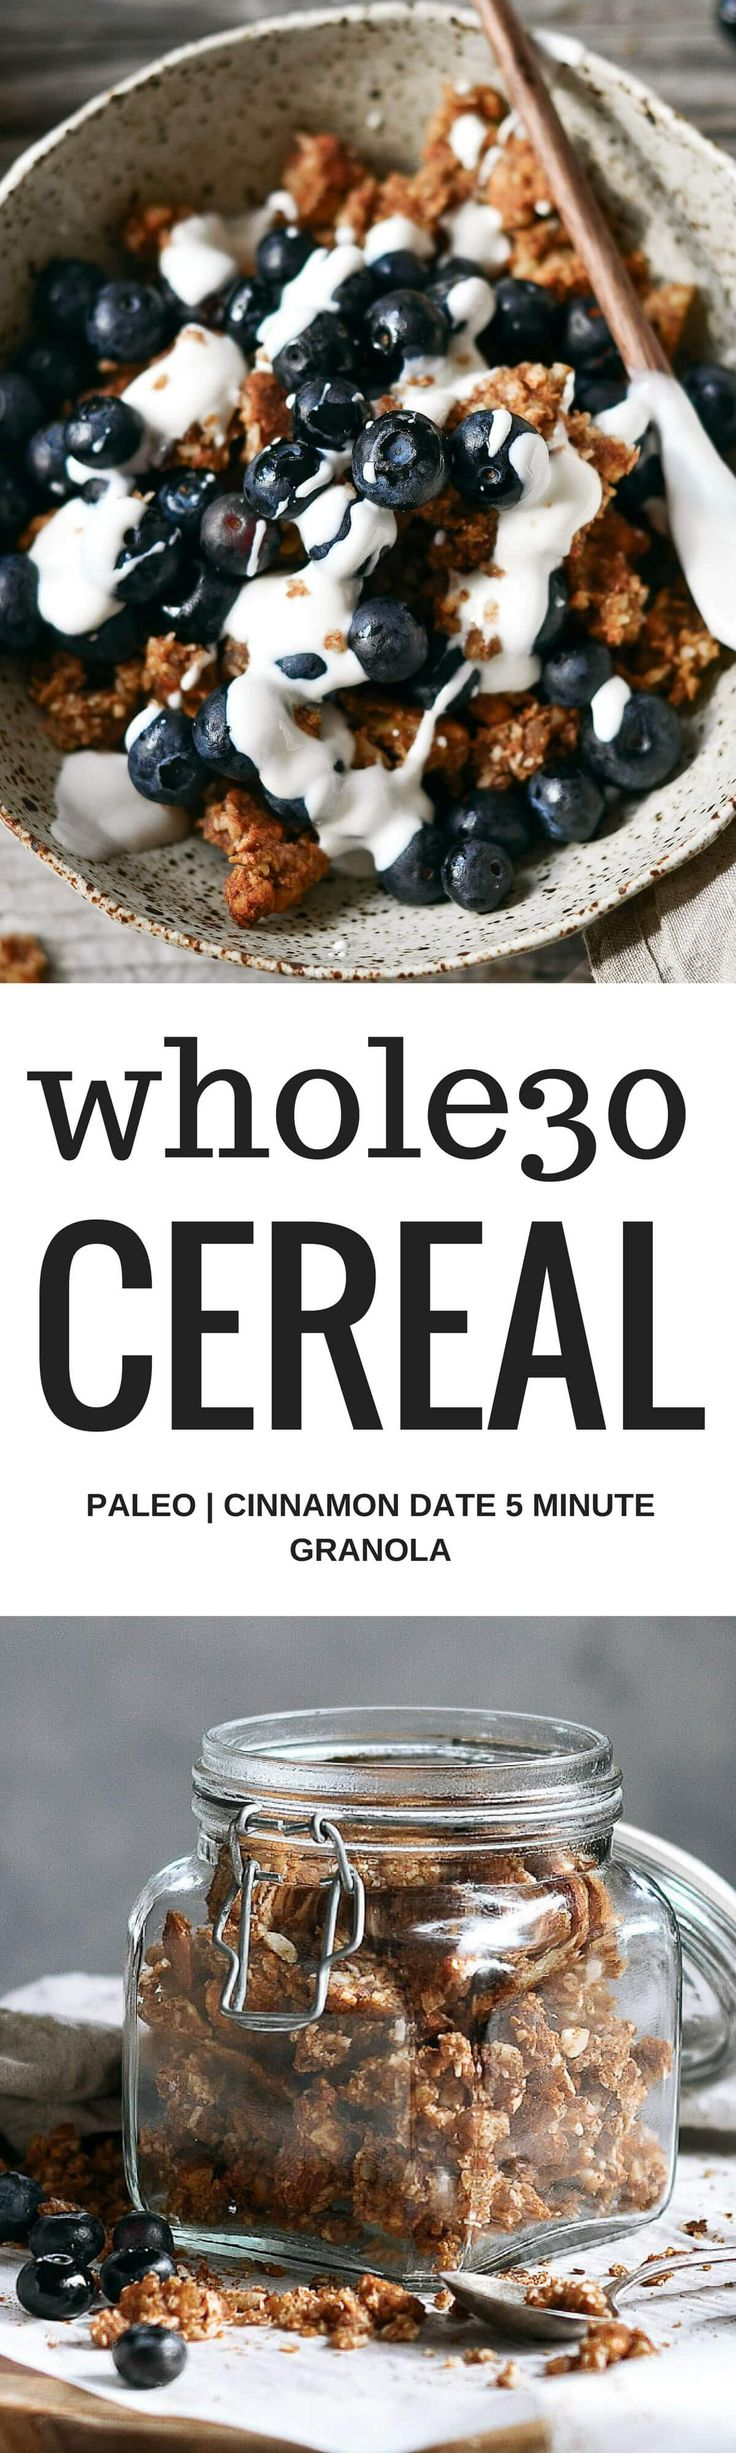 Easy whole30 and paleo cinnamon date granola. Made with toasty coconut, almond, nutty infusions, date pieces, and cinnamon spice. Sweetened naturally with pure date syrup! Made in minutes and uses all clean eating ingredients! Pin now to make for a healthy breakfast or snack later.